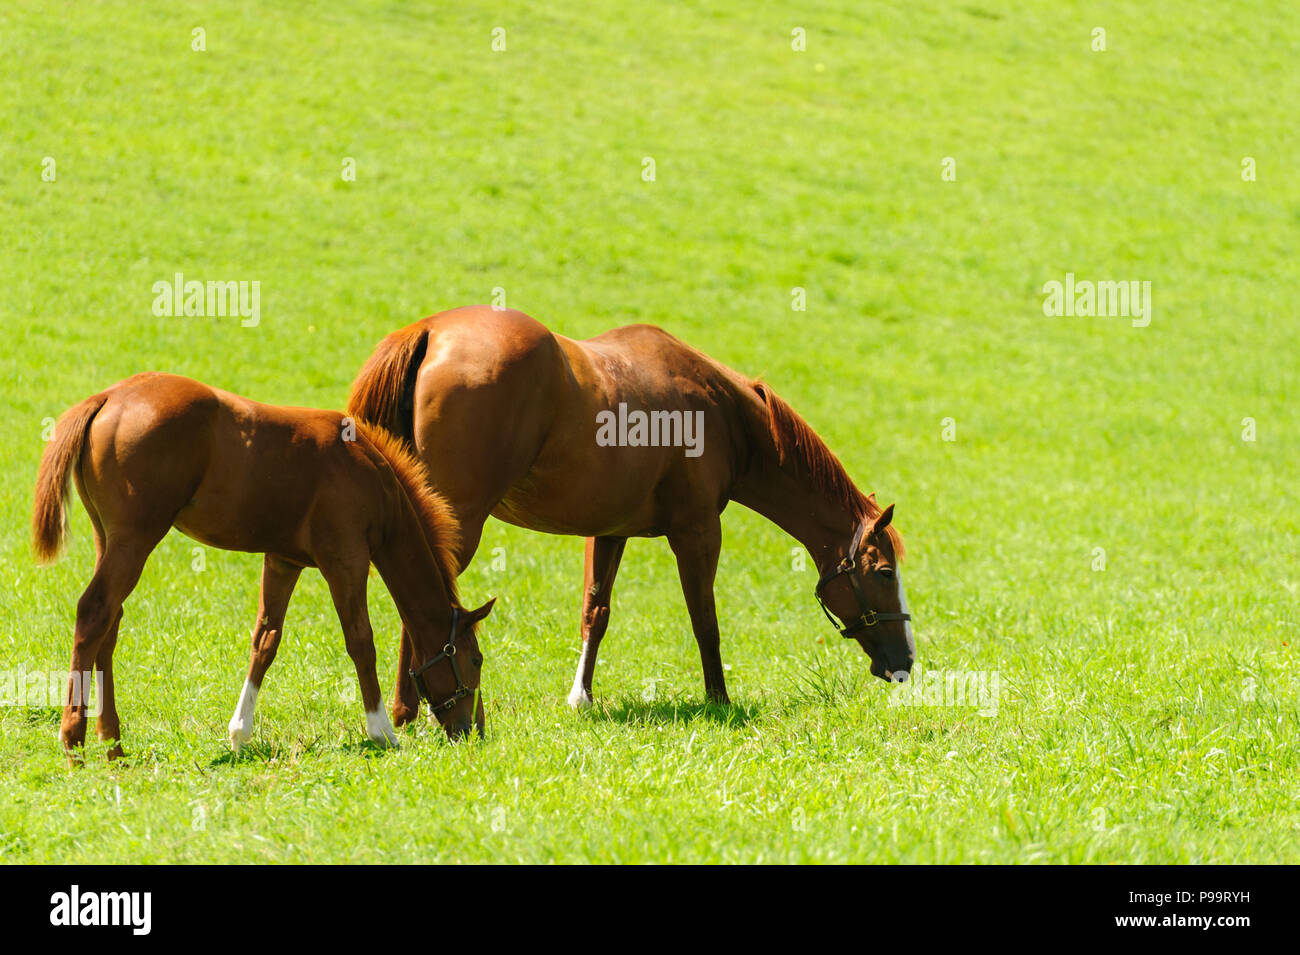 Horses grazing on Kentucky horse farm - Stock Image